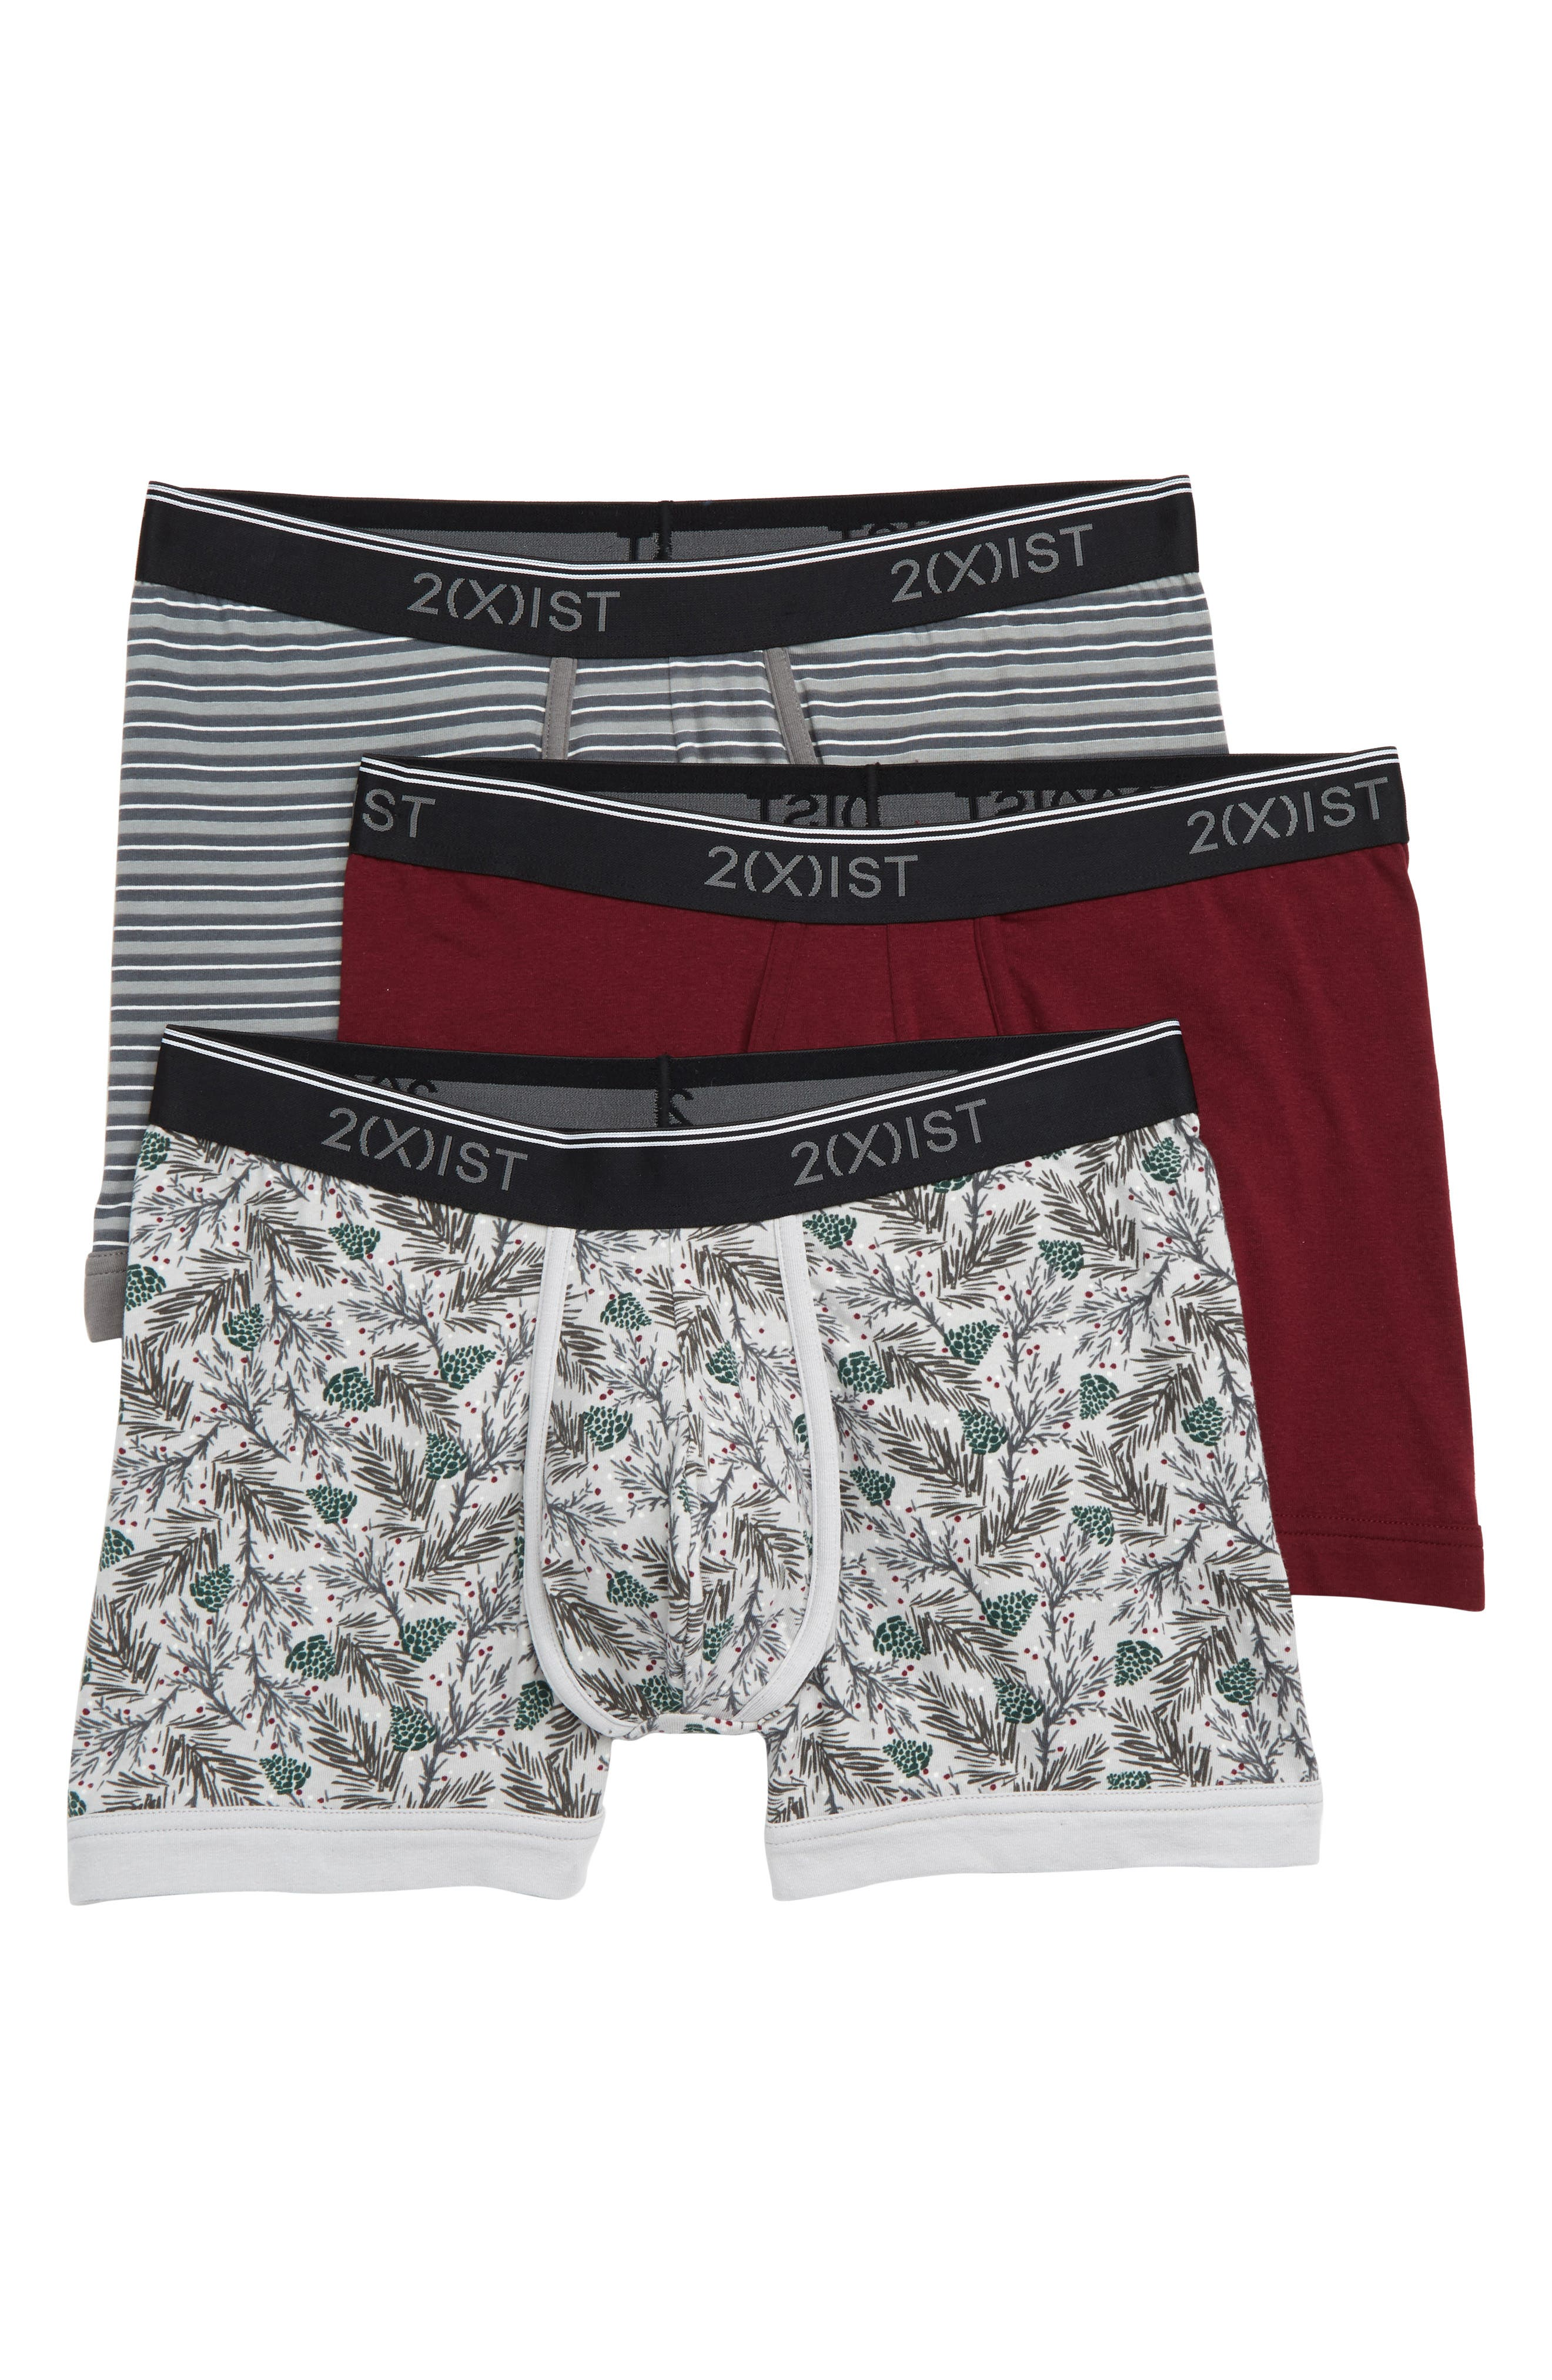 Image of 2(X)IST Stretch Boxer Briefs - Pack of 3